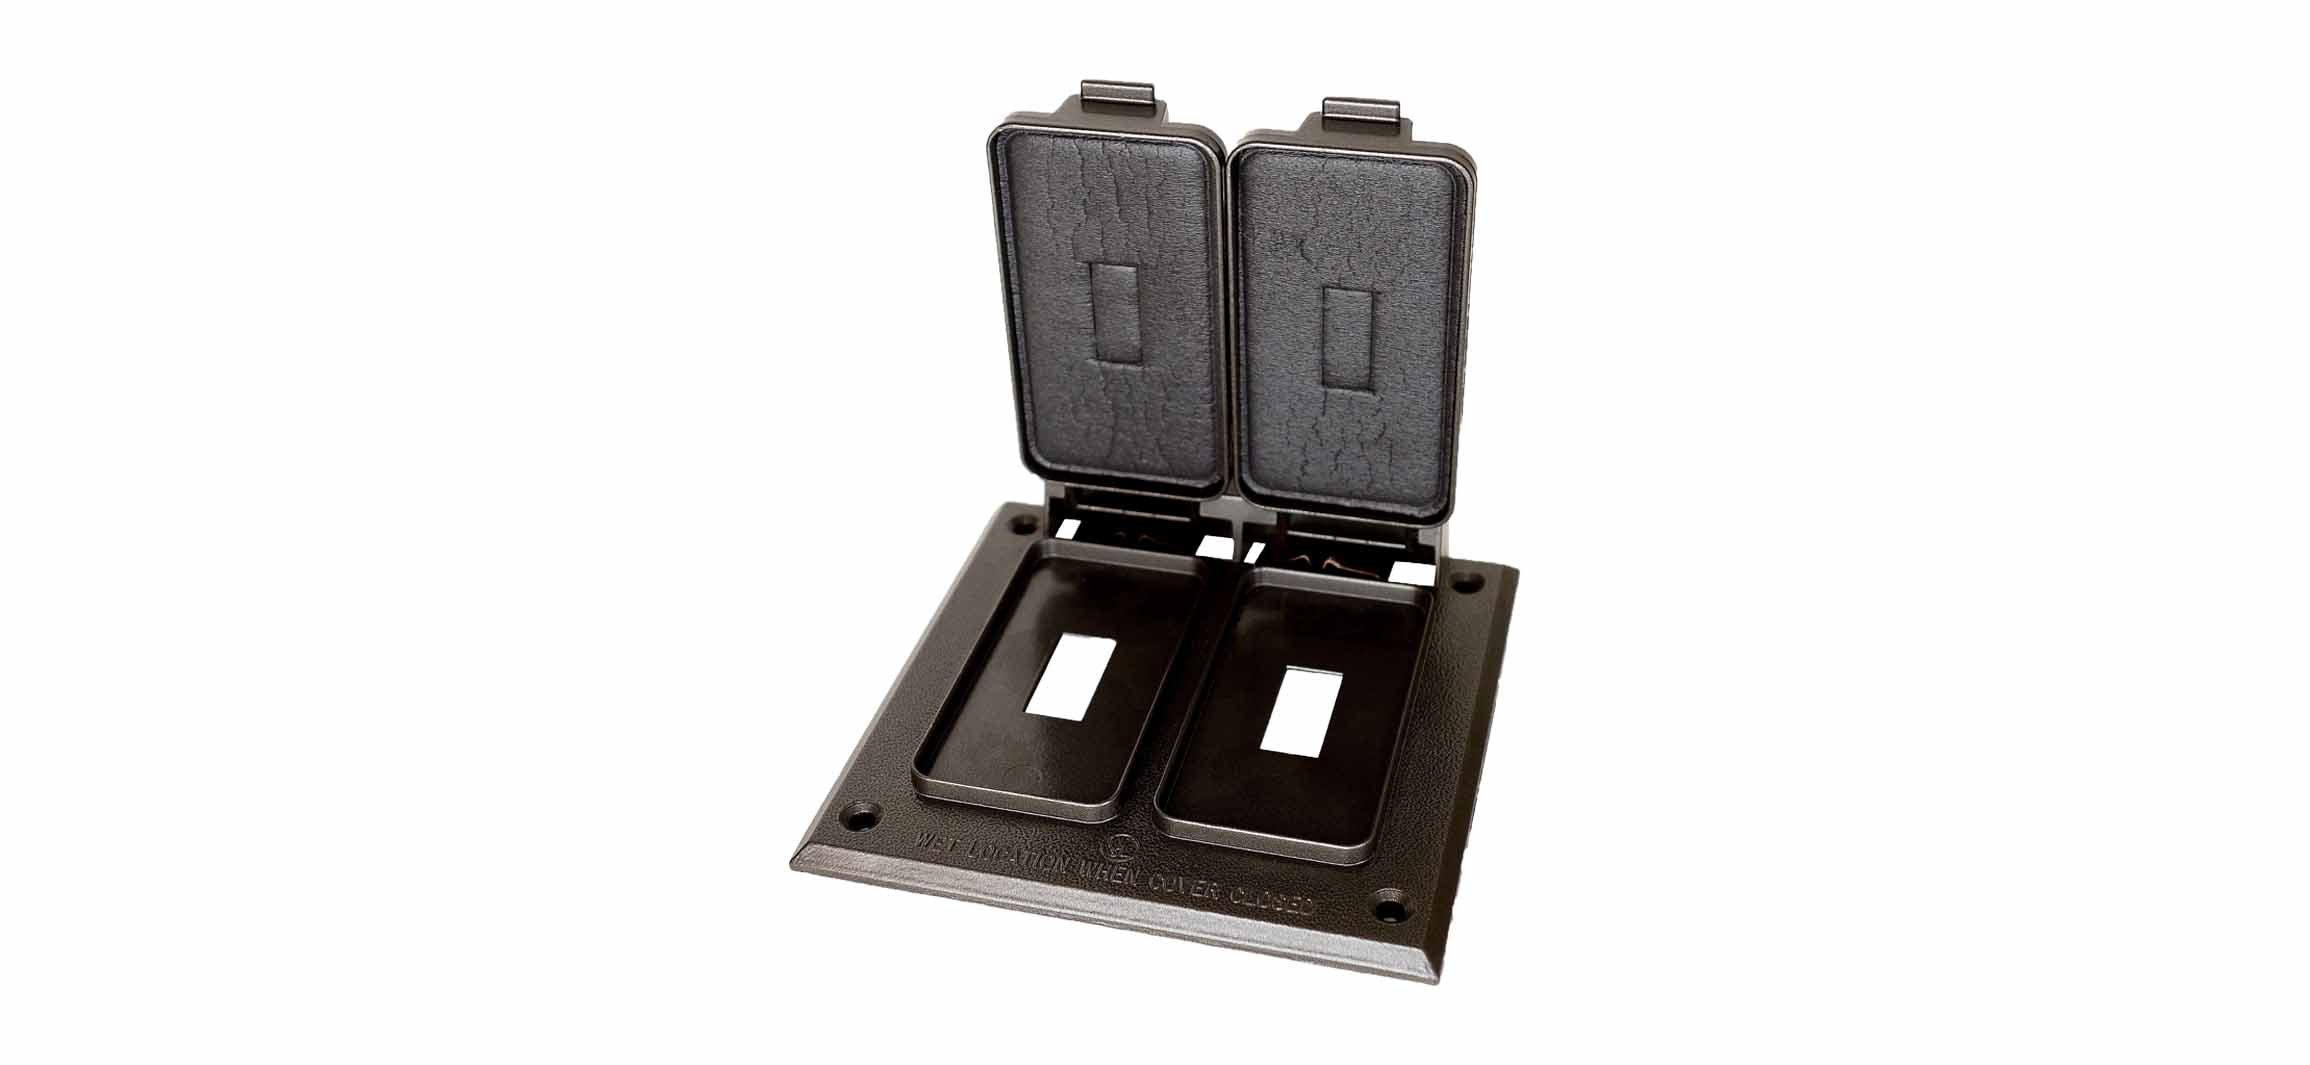 Made in USA Weatherproof Electrical Outlet Box Cover Bronze